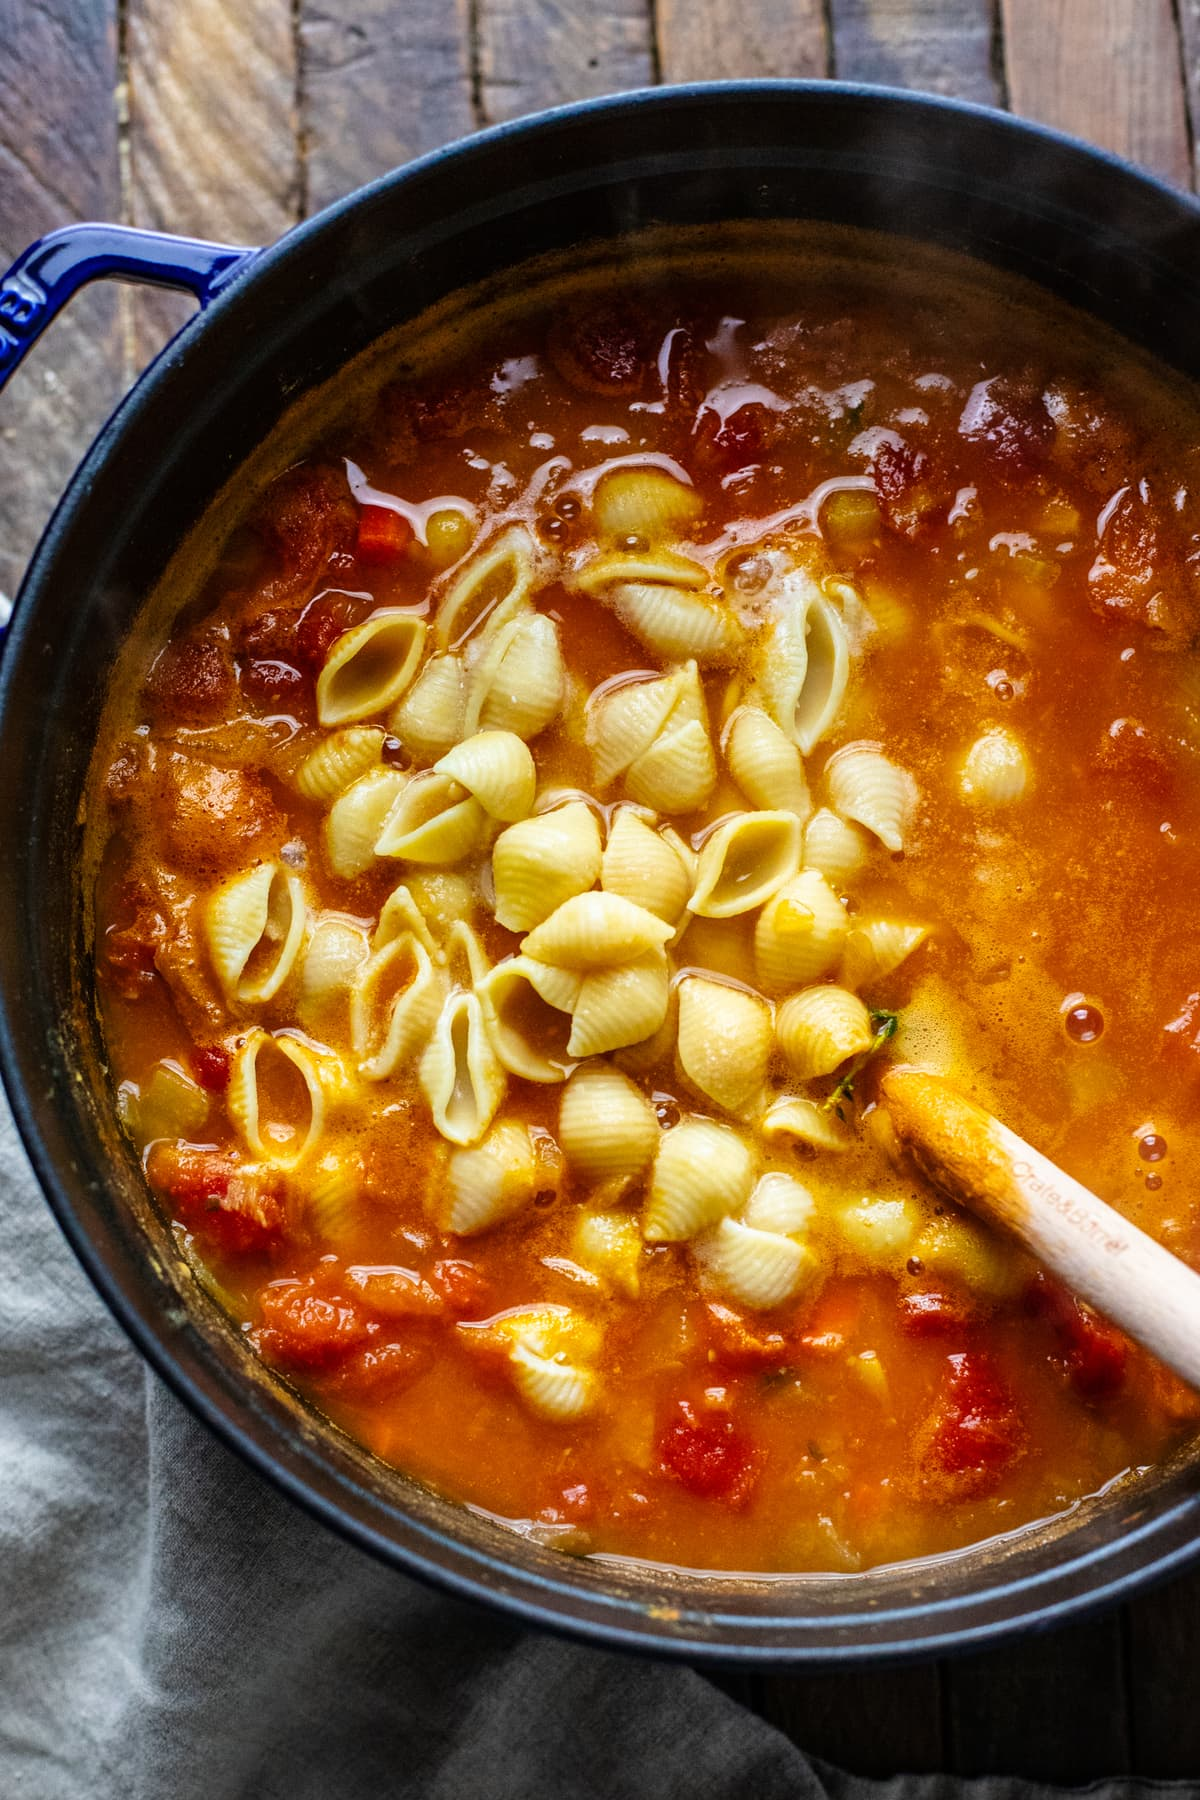 a black pot with red soup in it with pasta shells being mixed in.